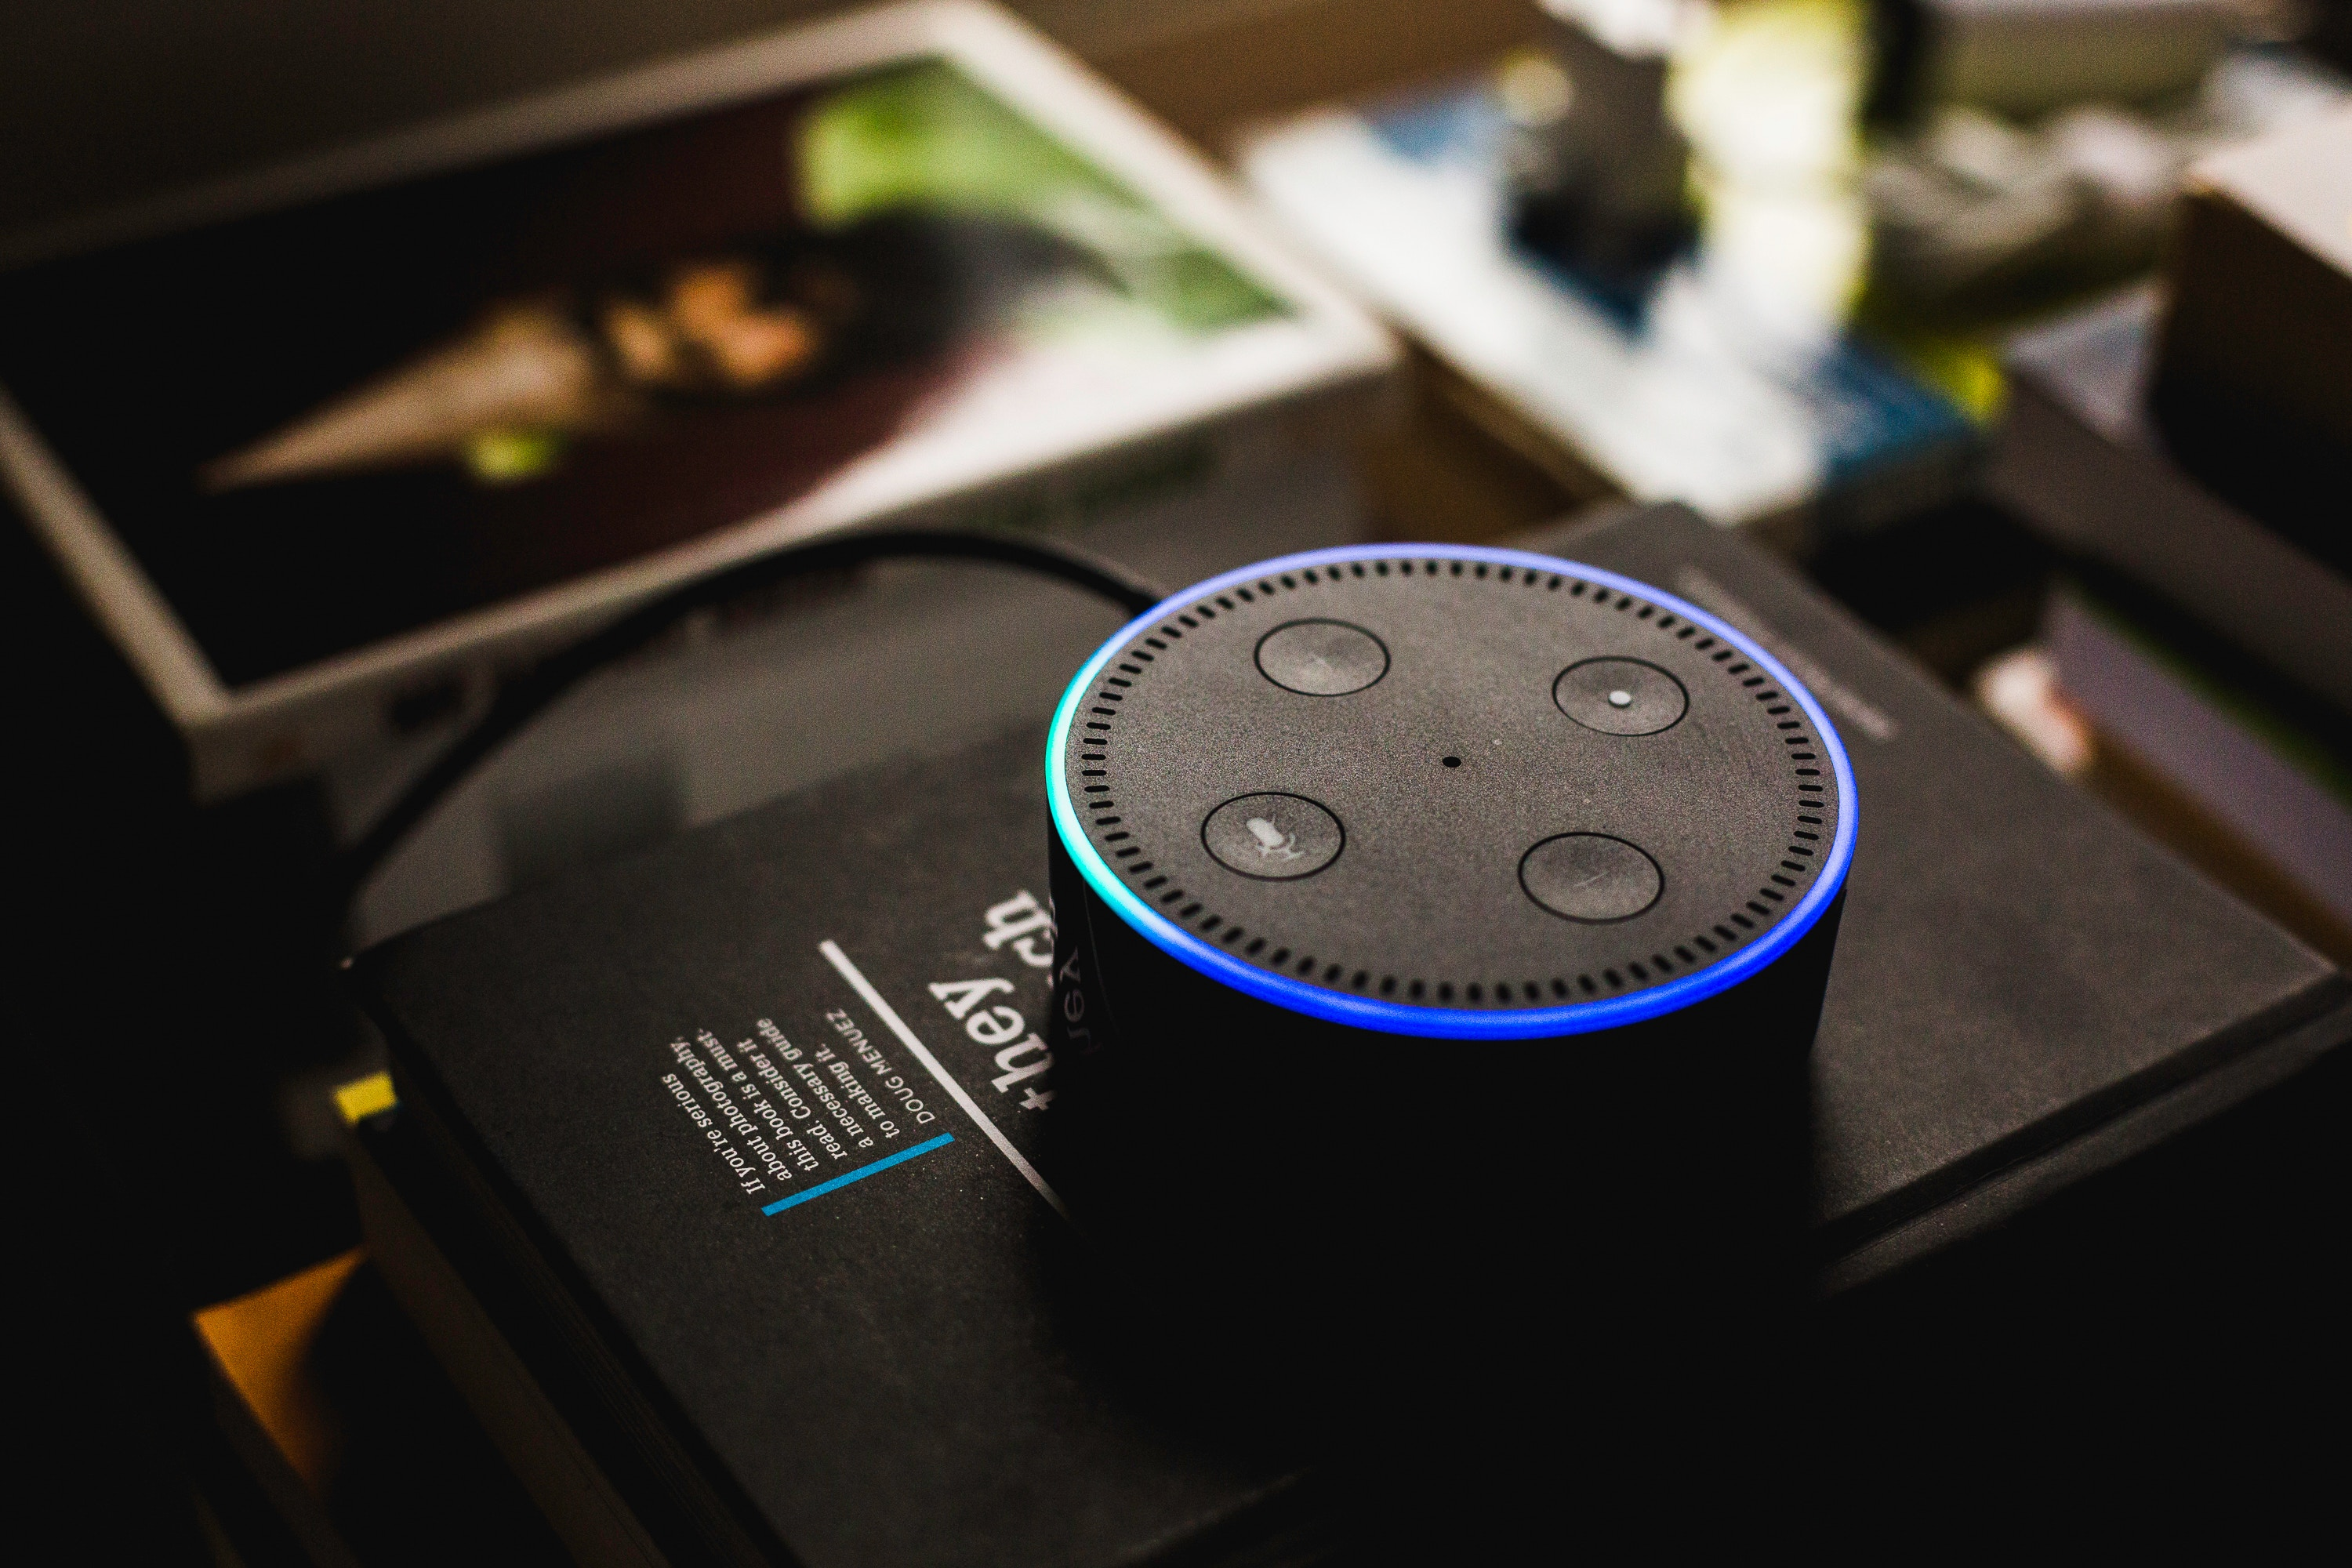 amazon echo internet digital assistant